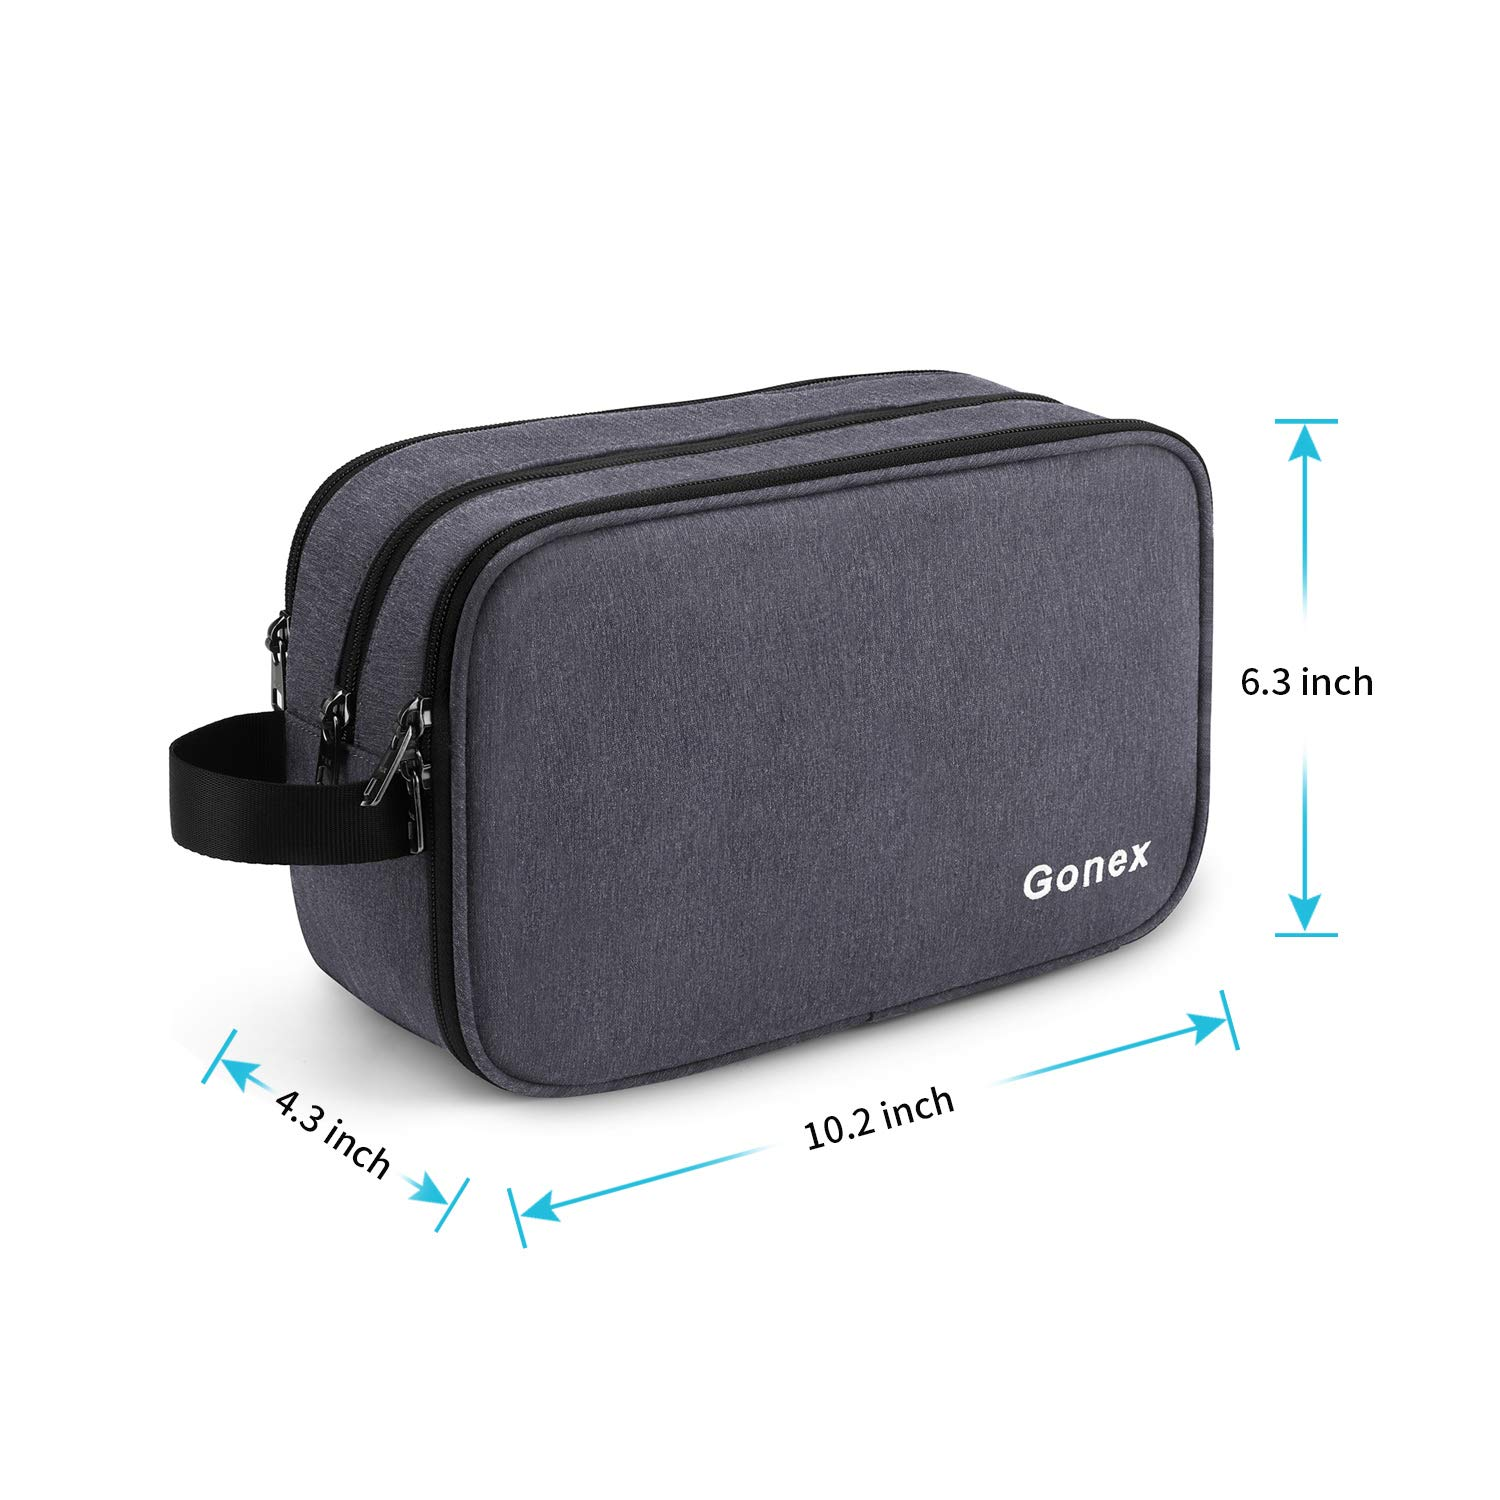 Gonex Travel Toiletry Bag for Men and Women Dry Wet Separated Dopp Kit Shaving Bag Cosmetic Makeup Organizer Large Business Overnight Trip Daily Organizer with YKK Zippers, Navy